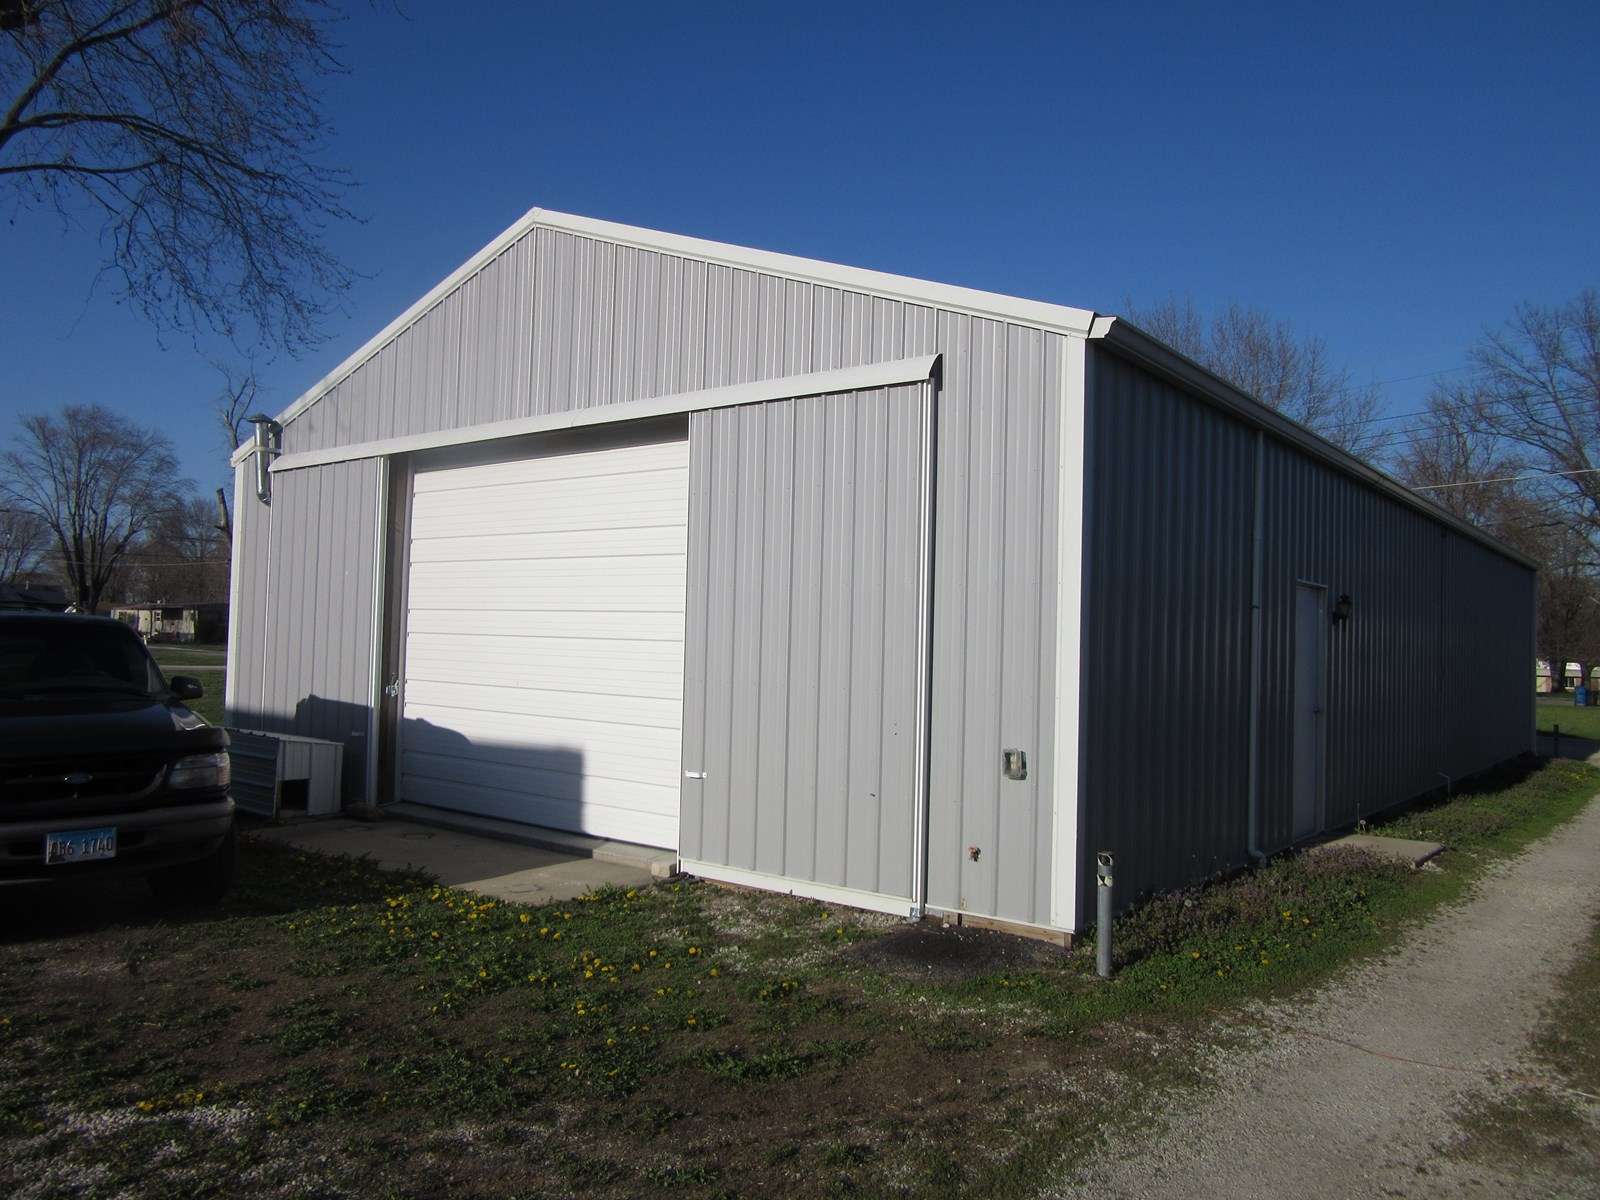 30x60 pole barn on 48x122' lot. Heated, insulated, 1/2 bath.